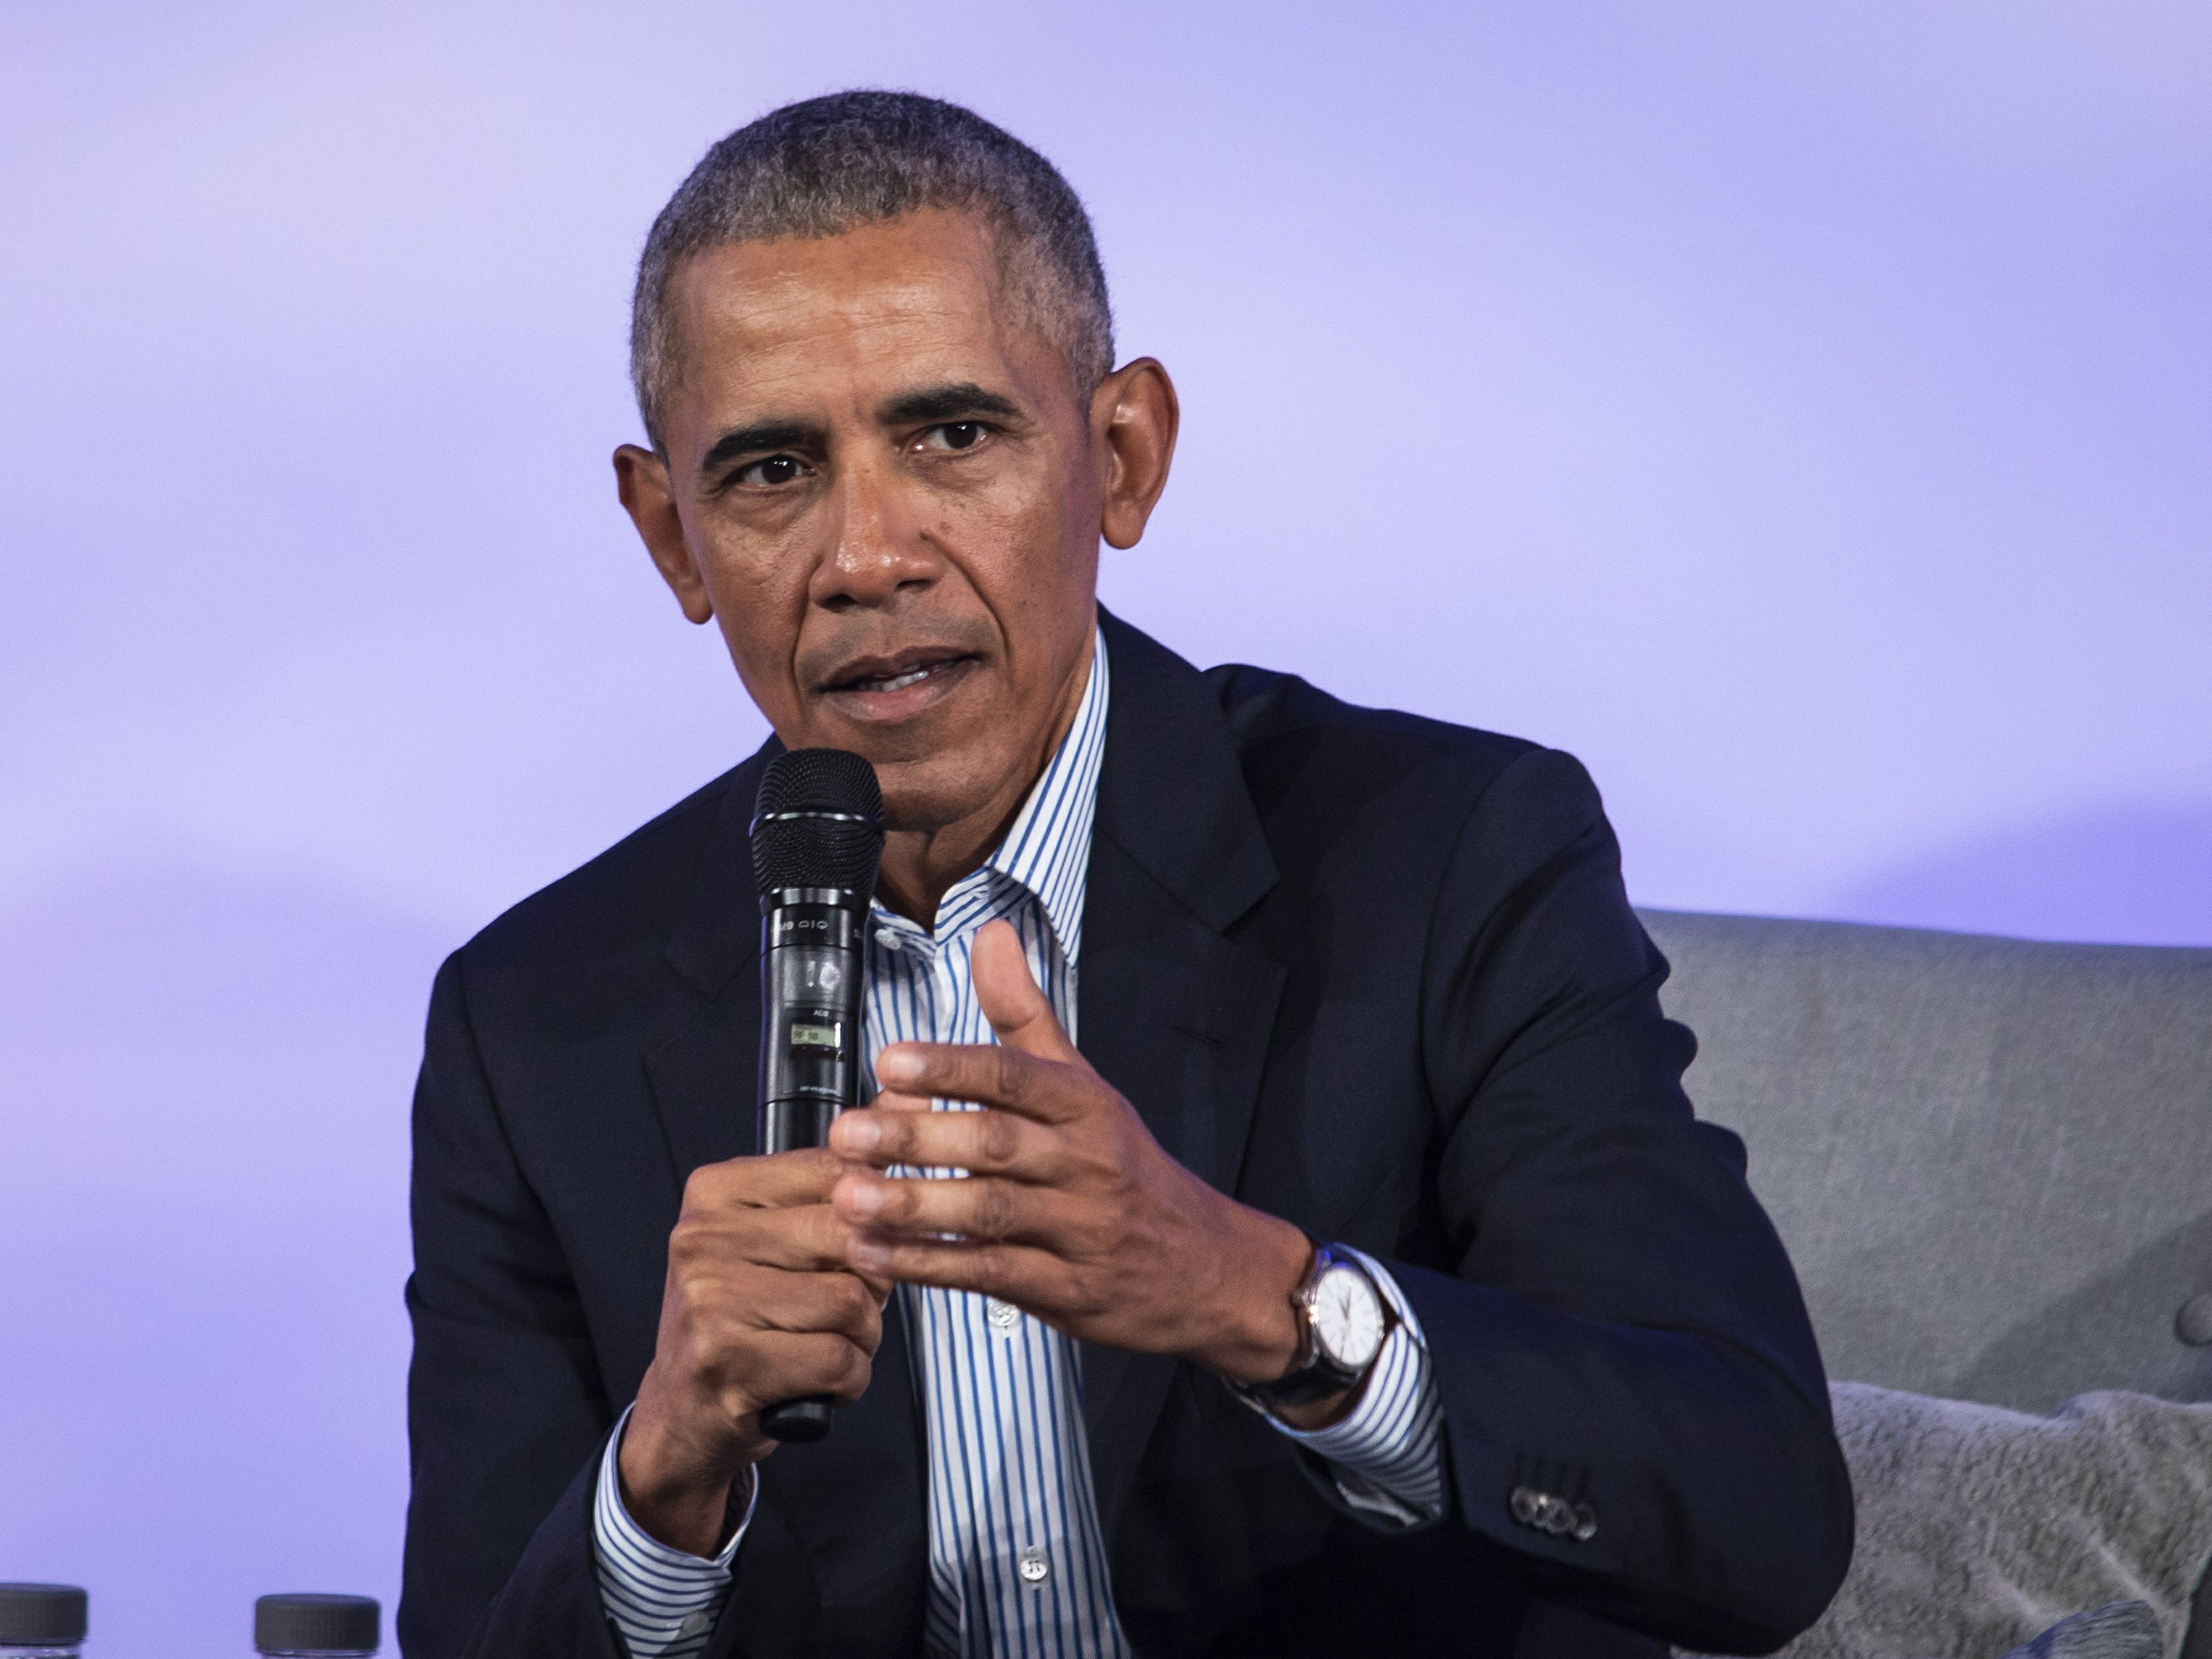 Obama talks climate change, inequality at green conference - Associated Press